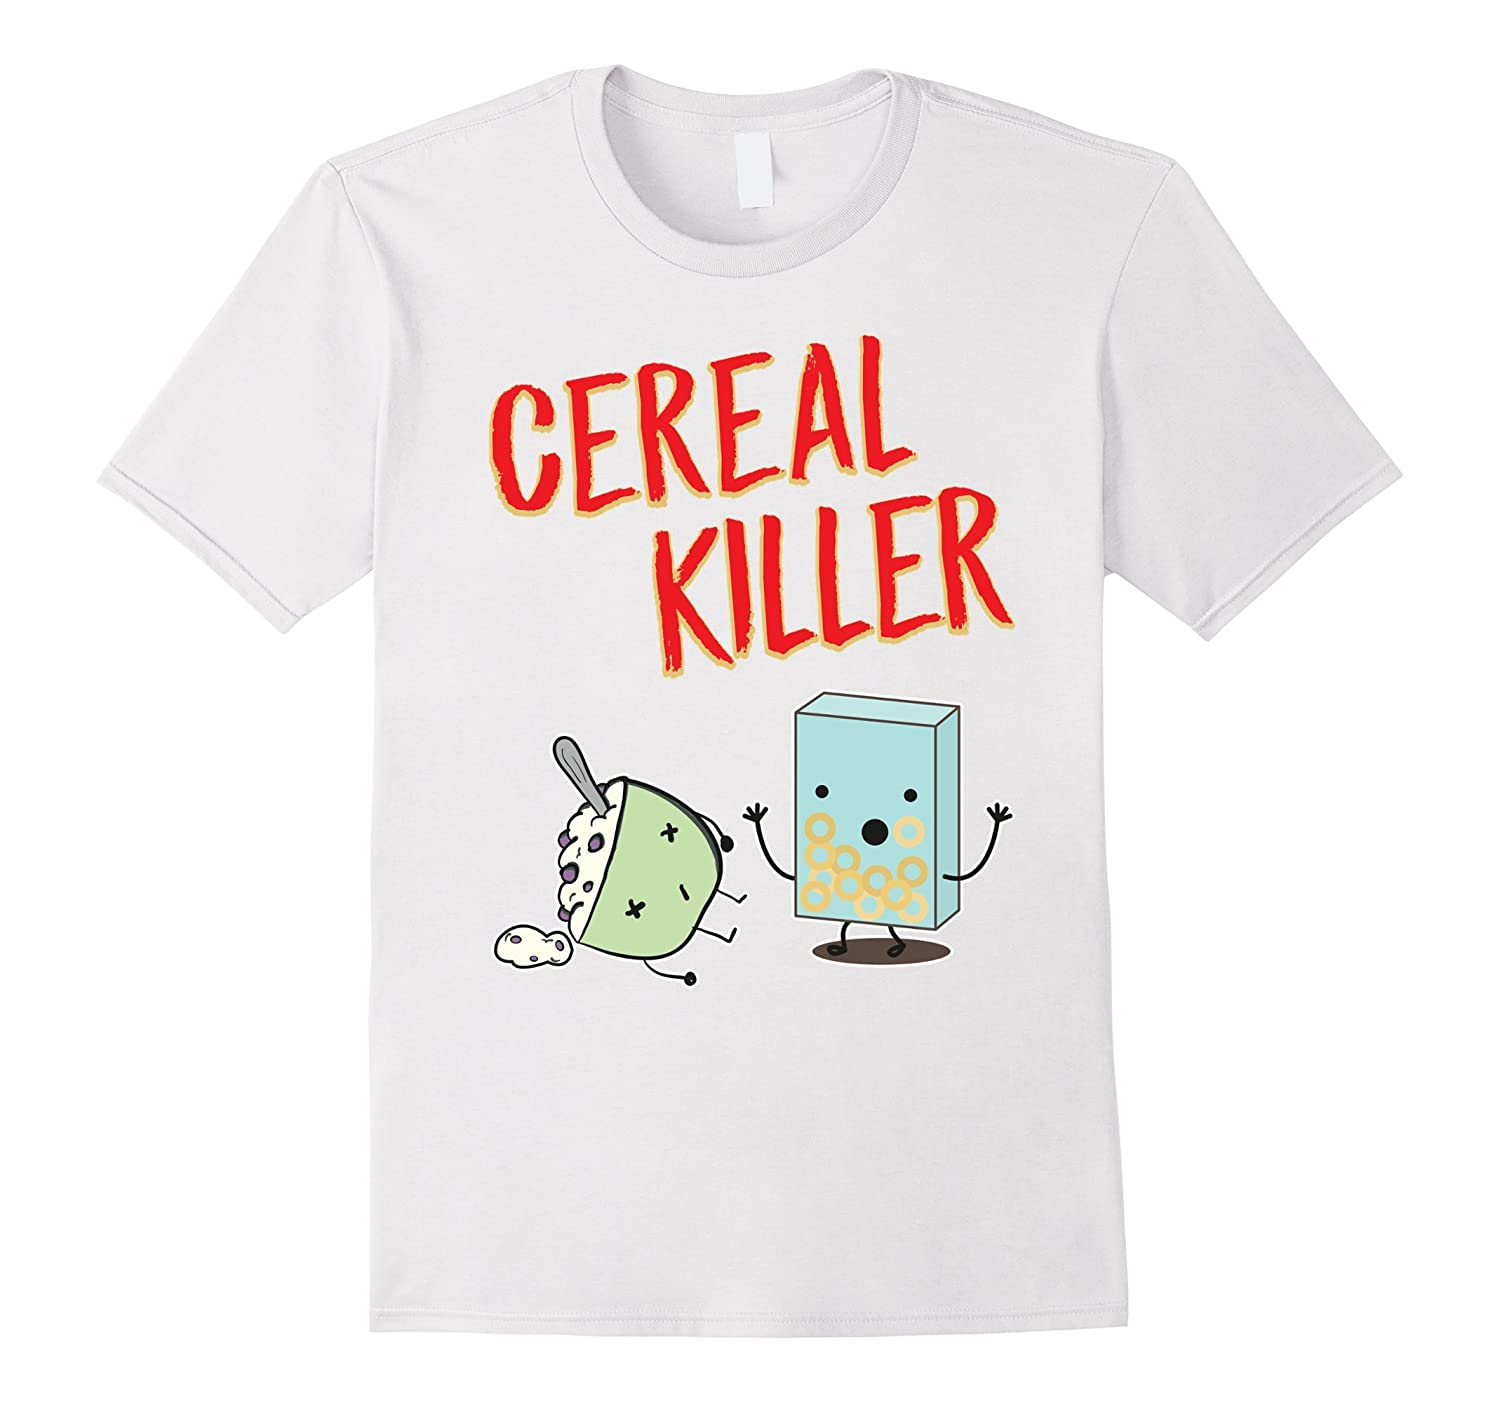 3416ba61 Funny Cereal Killer T-Shirt Food Graphic Tees Novelty Gifts-TJ ...